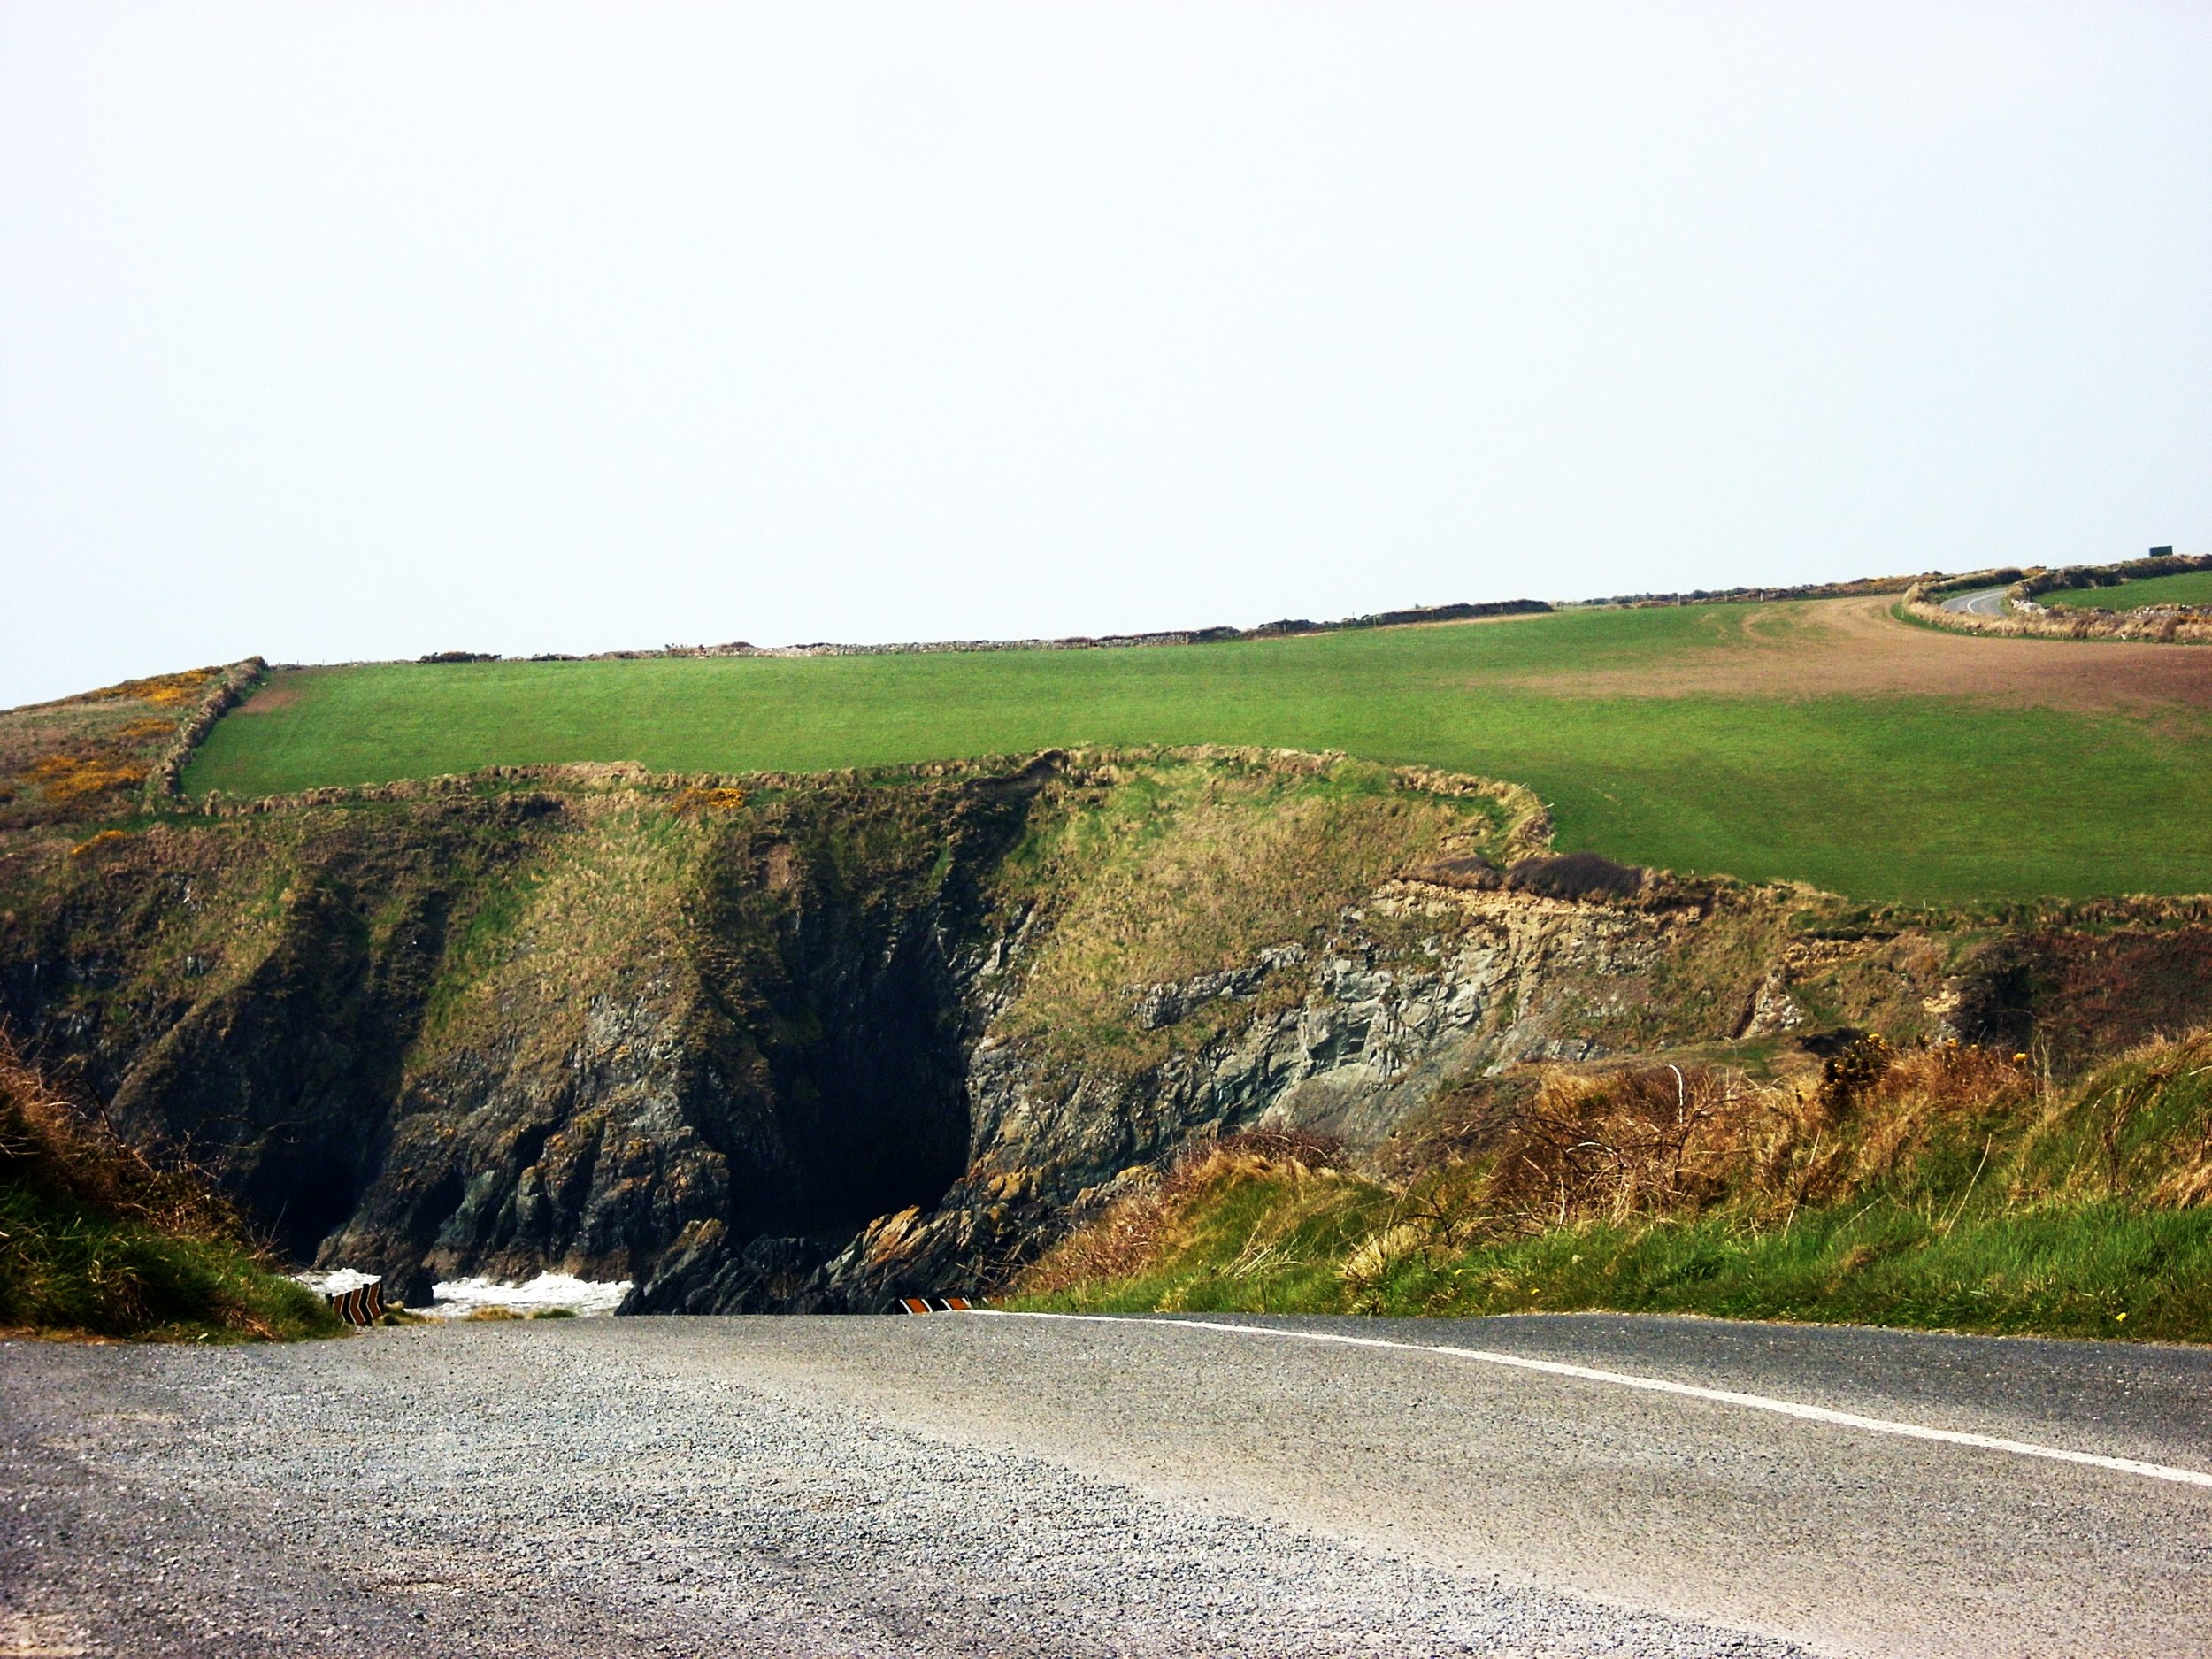 image from the road of green grass and cliffs in county waterford, ireland